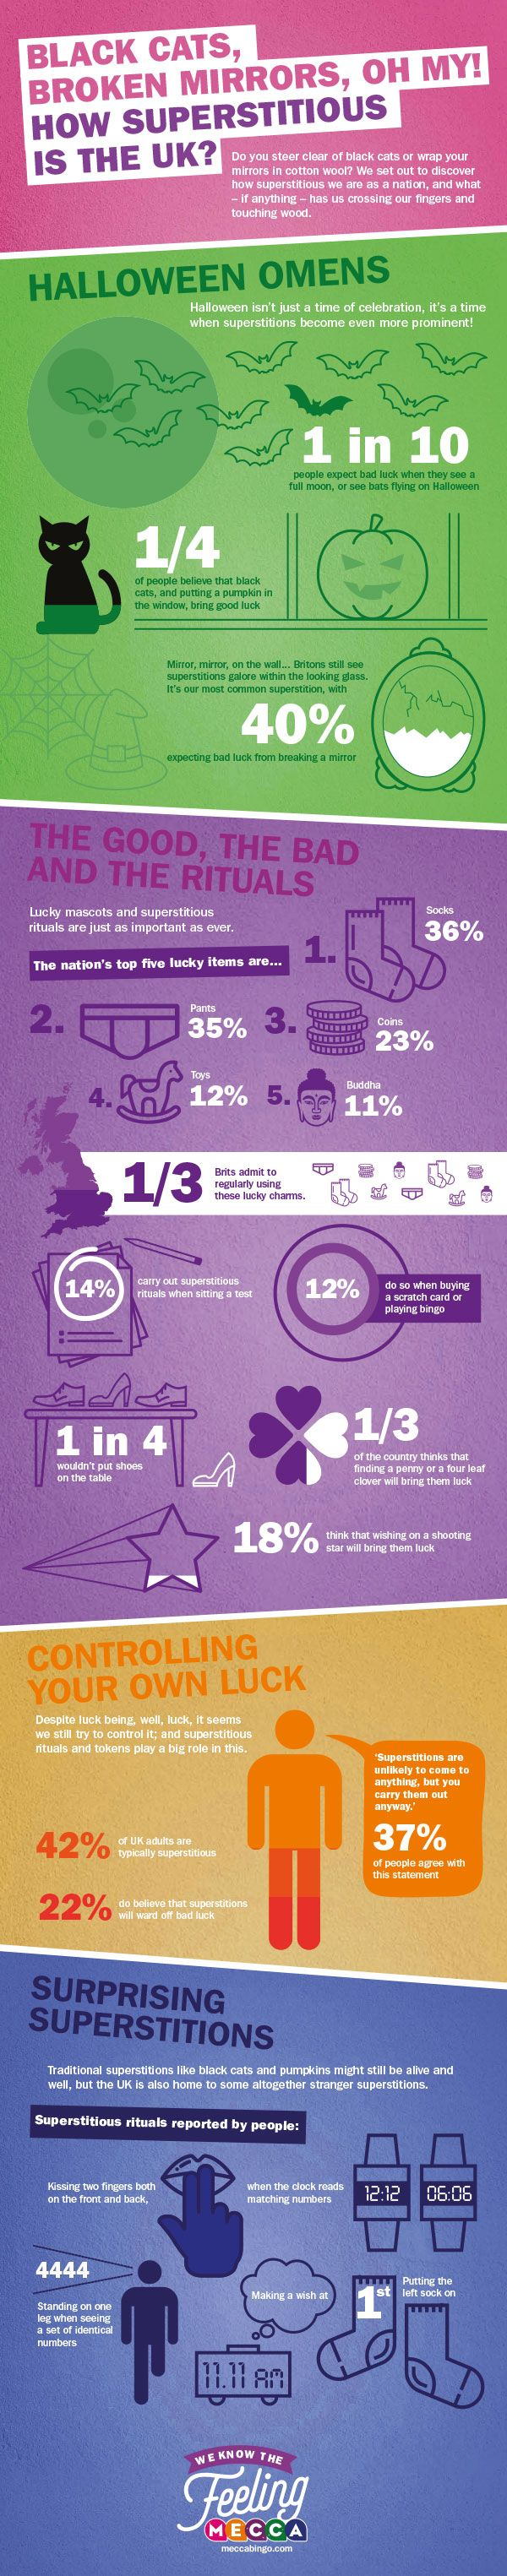 Superstitions in the UK #infographic #Entertainment #LuckyCharms